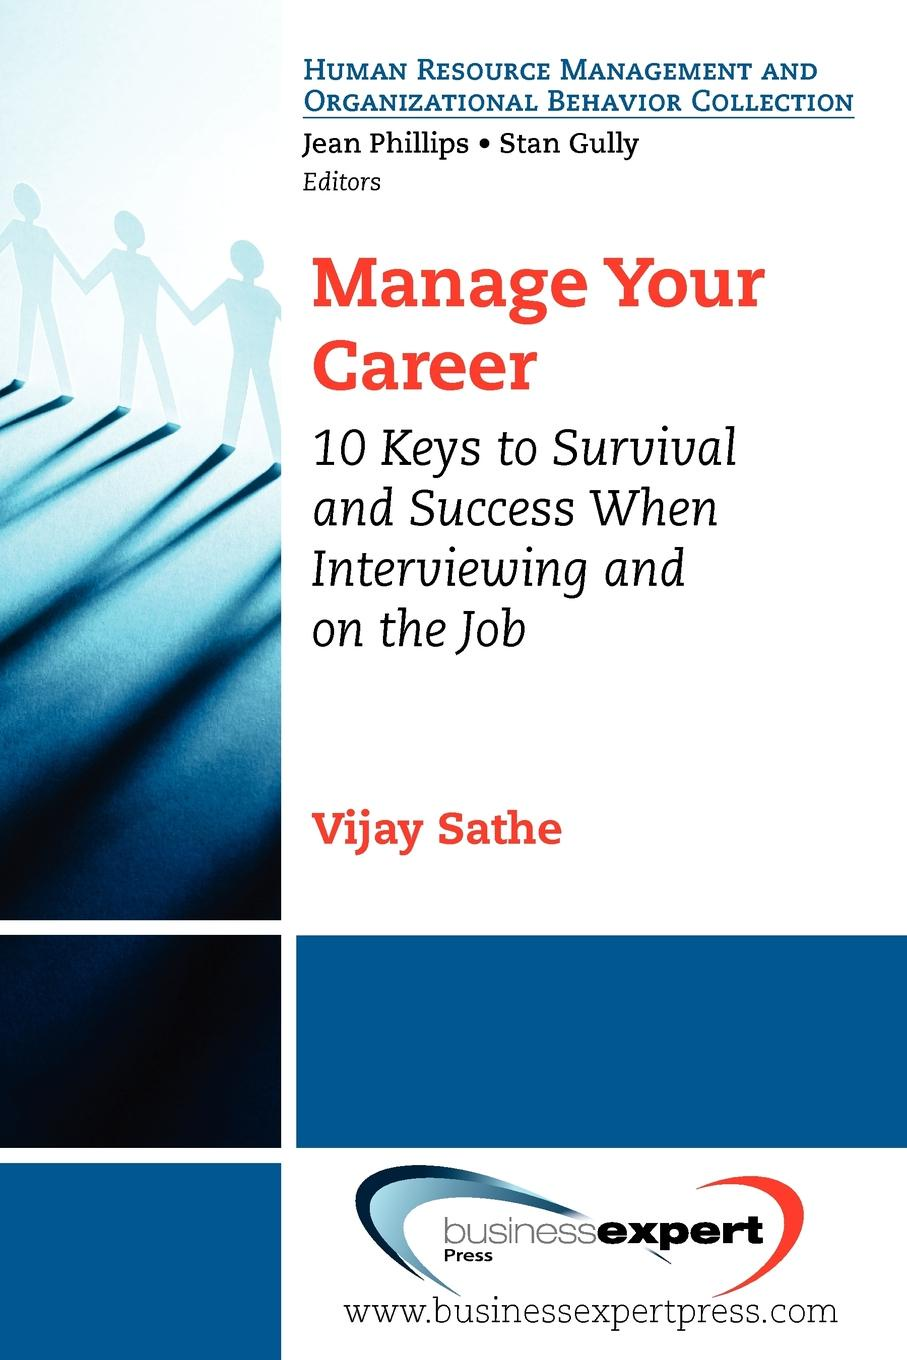 Vijay Sathe Manage Your Career. 10 Keys to Survival and Success When Interviewing and on the Job saul miller l why teams win 9 keys to success in business sport and beyond isbn 9780470160725